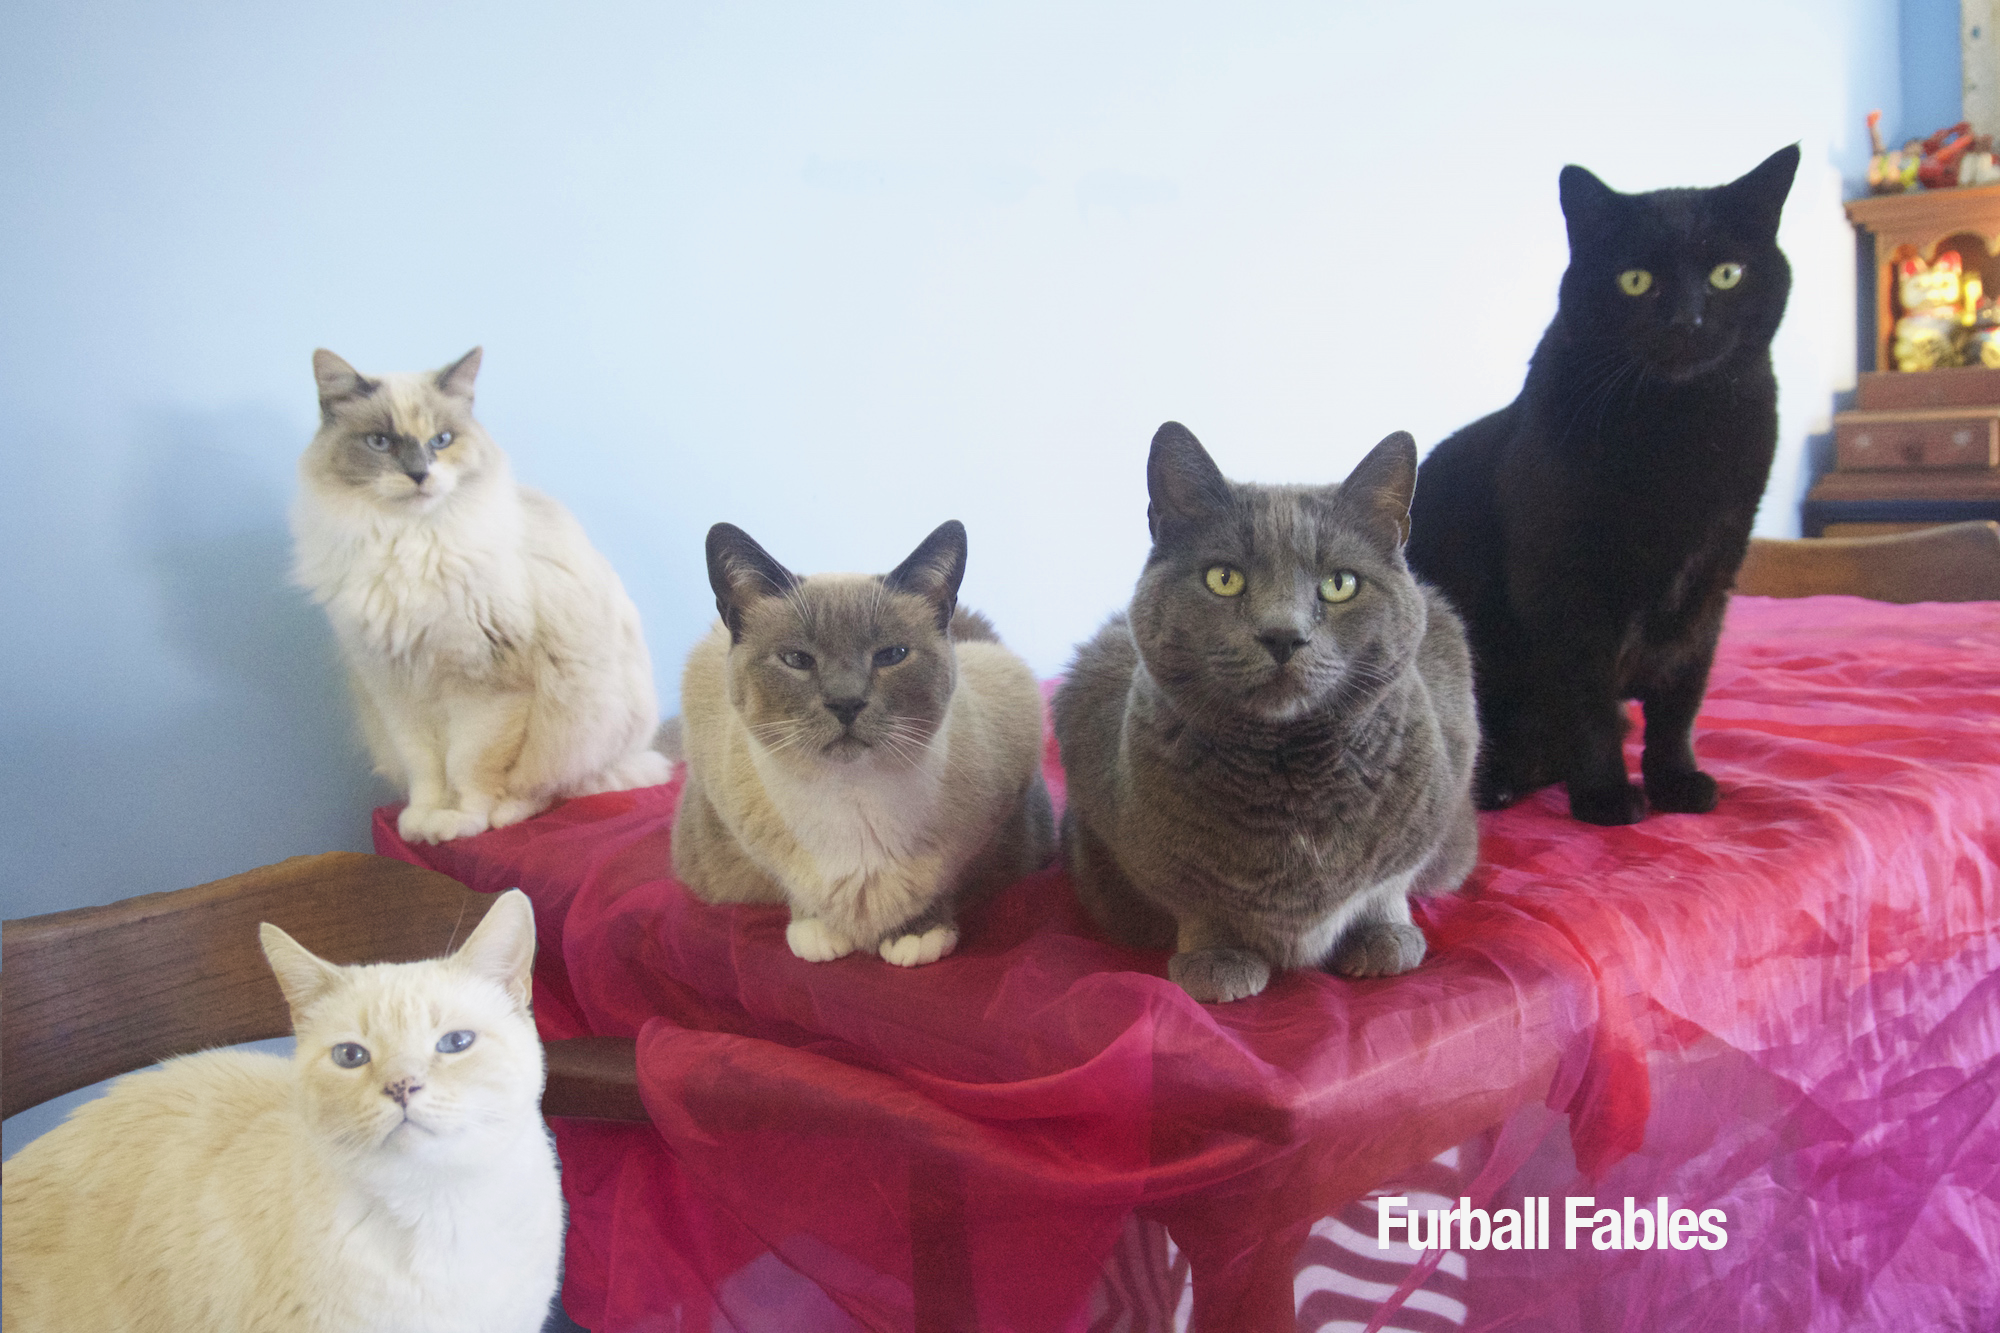 The Furball fables Cats